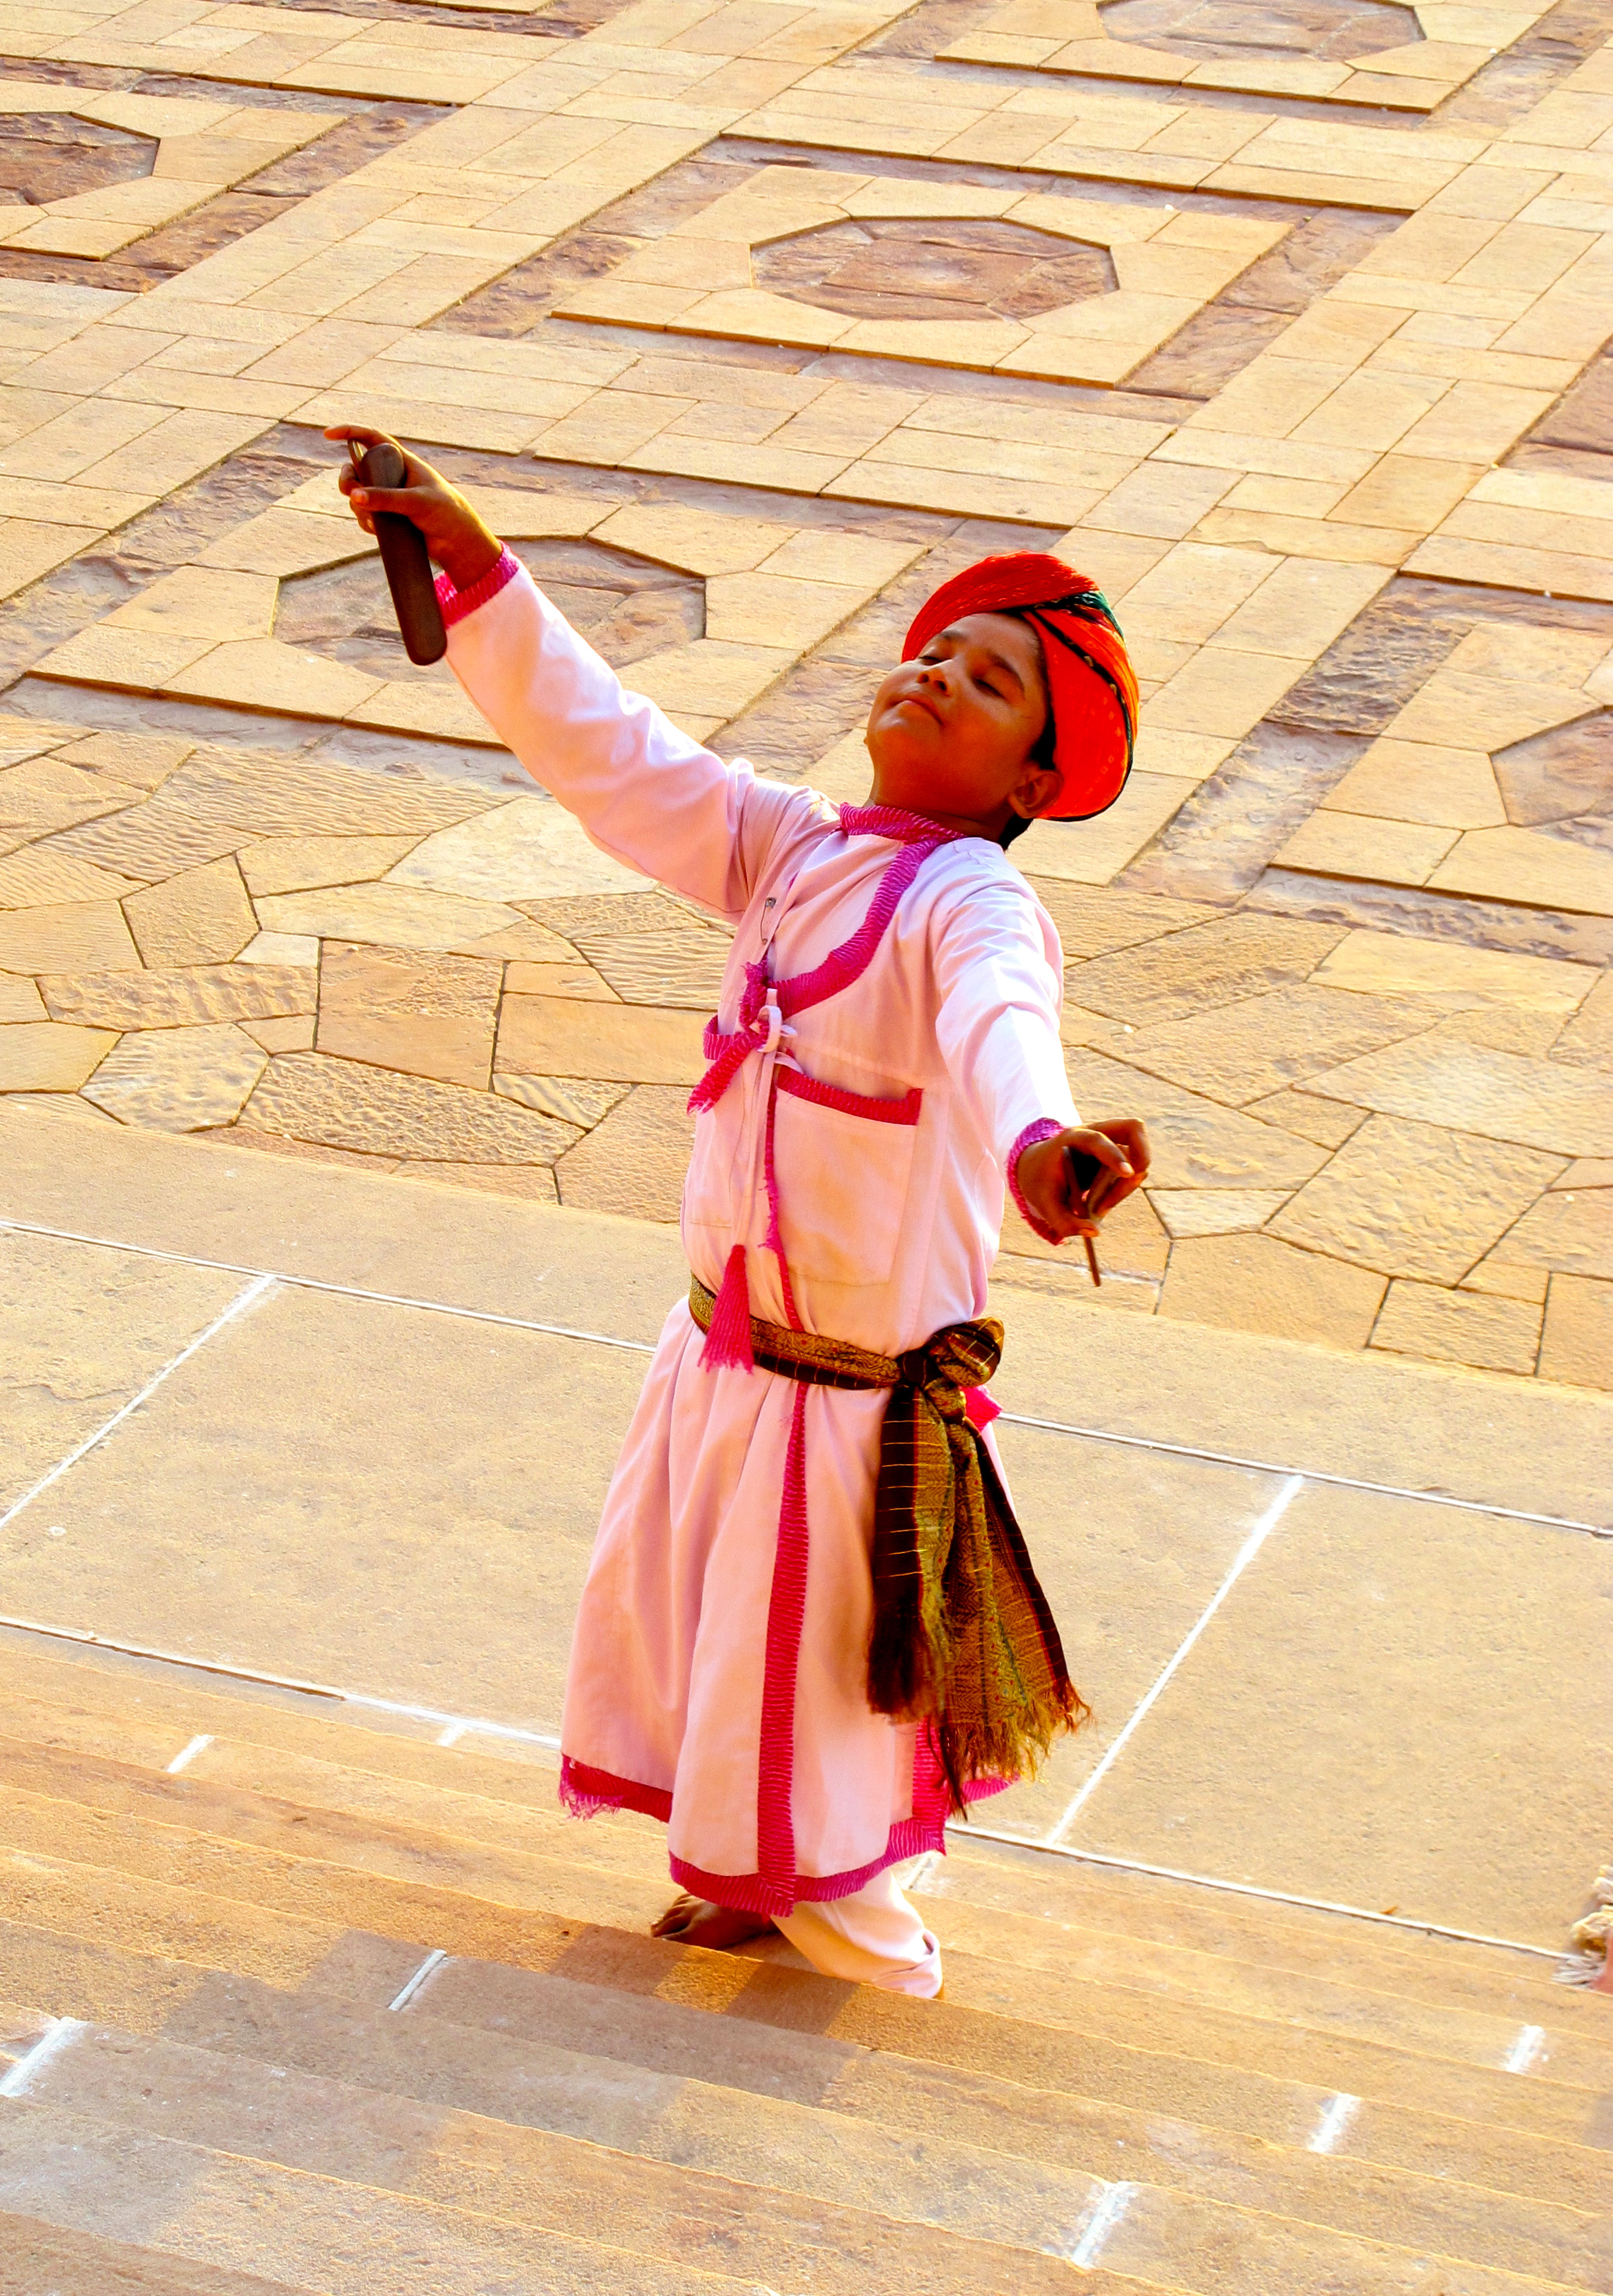 Young dancer - Taj Umaid Bhawan Palace - Jodhpur - India